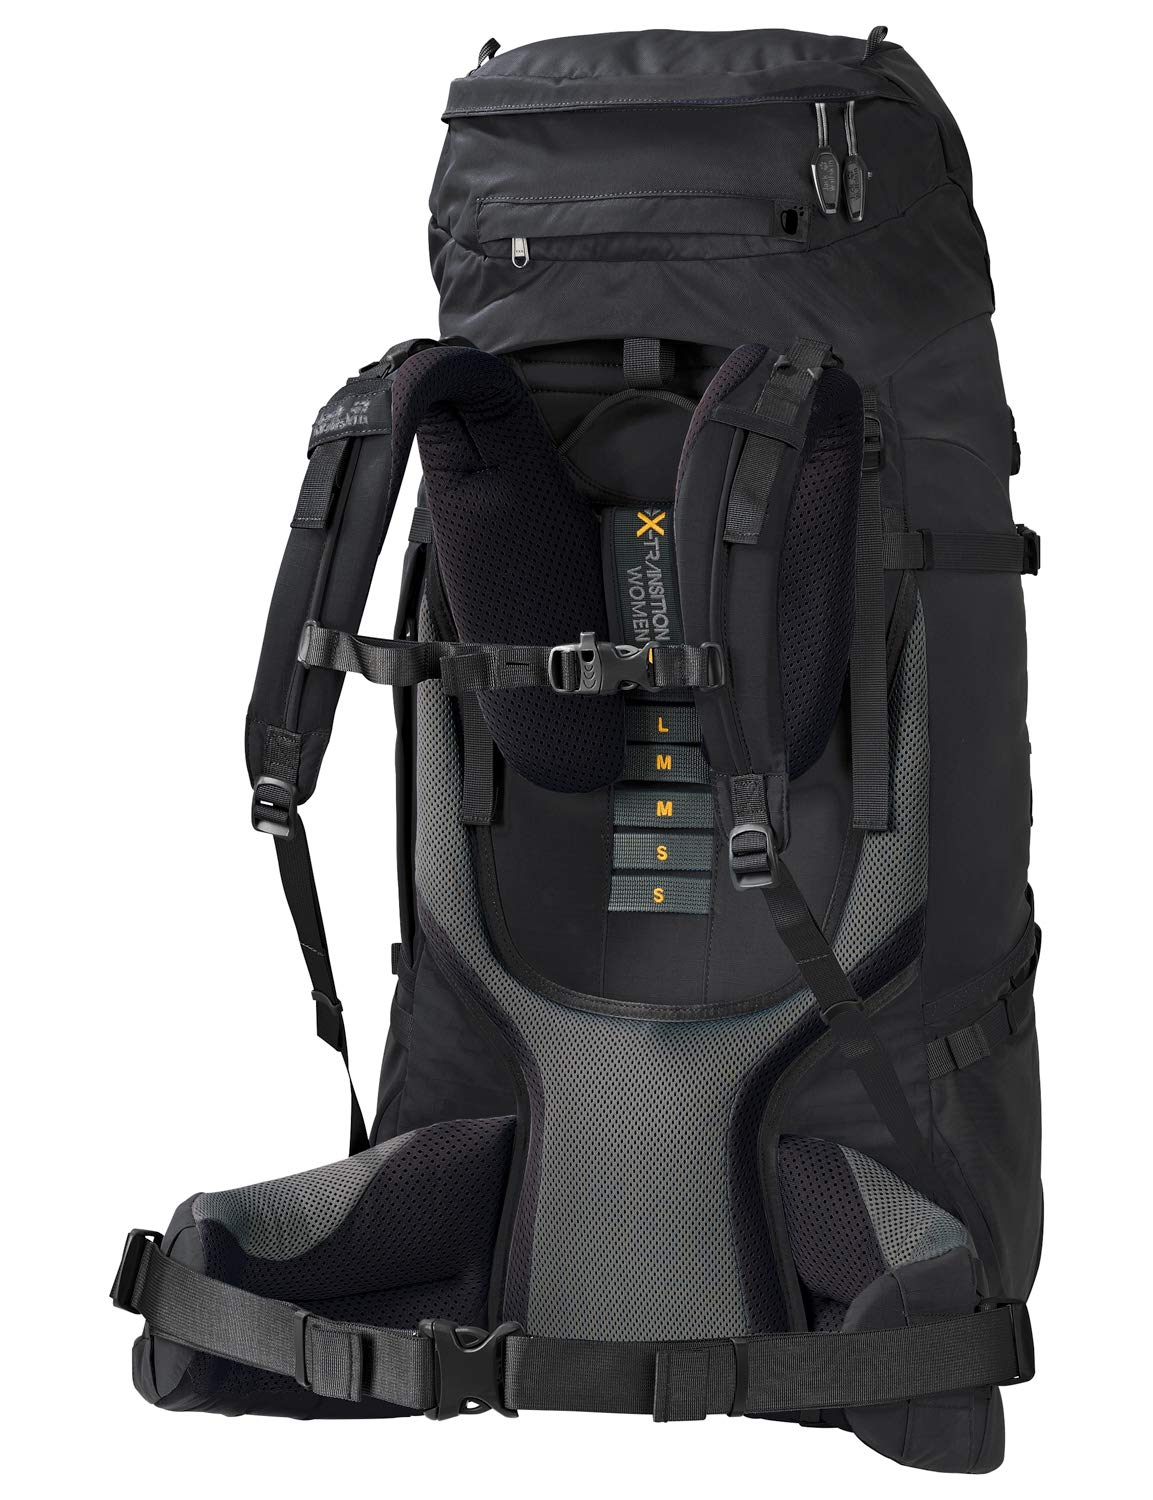 Amazon.com : Jack Wolfskin Denali 60l Womens Internal Frame Trekking Hiking Backpack Phantom : Sports & Outdoors